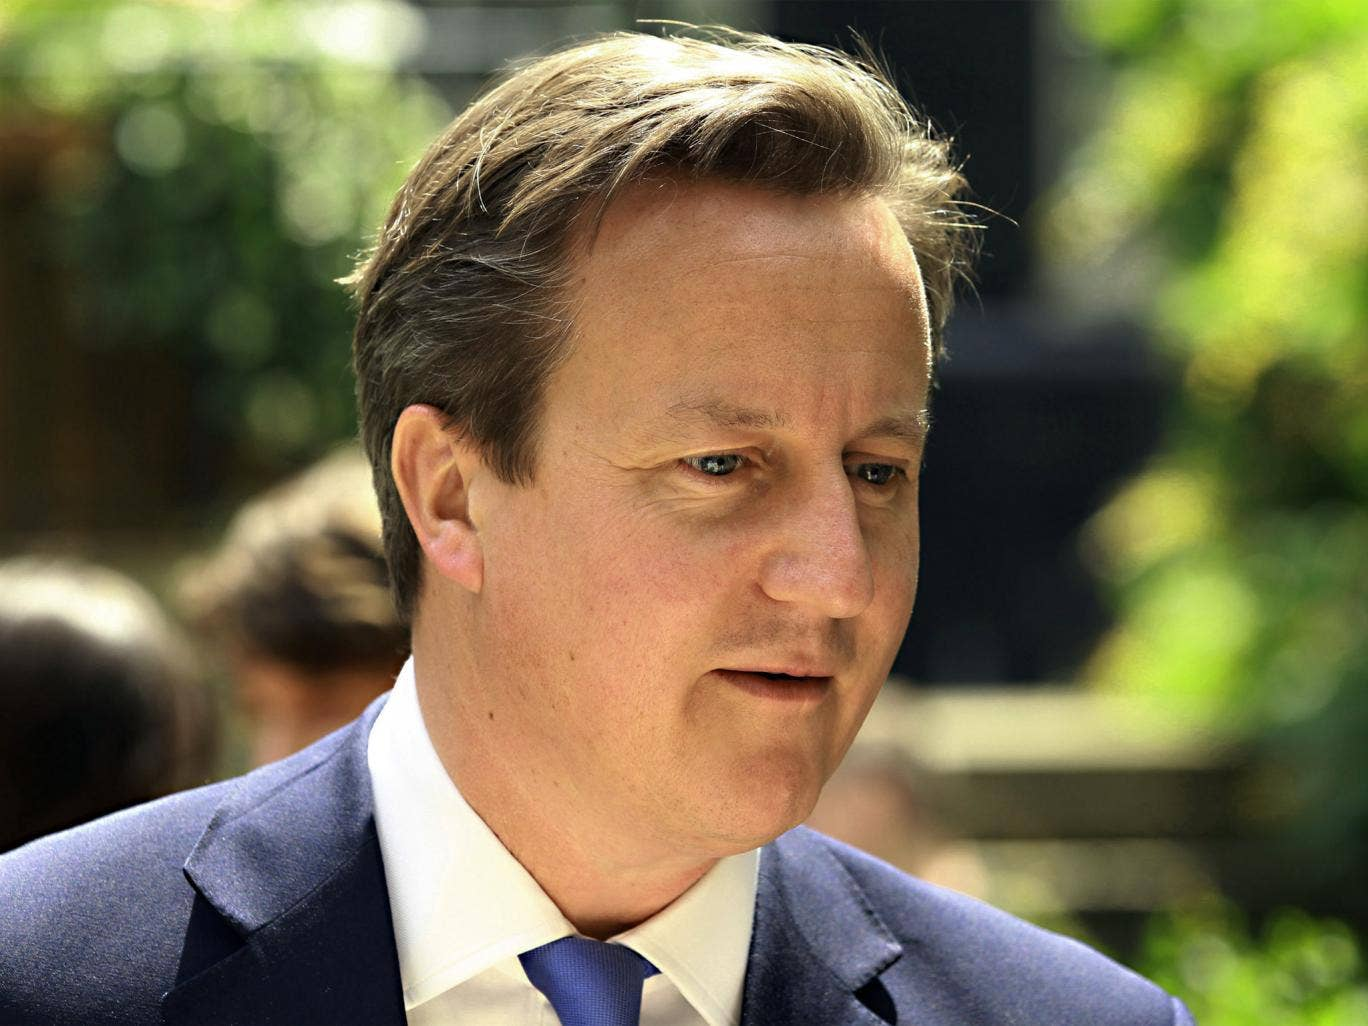 The Prime Minister might be wary of backbenchers who are hostile towards Britain pledging more to foreign aid